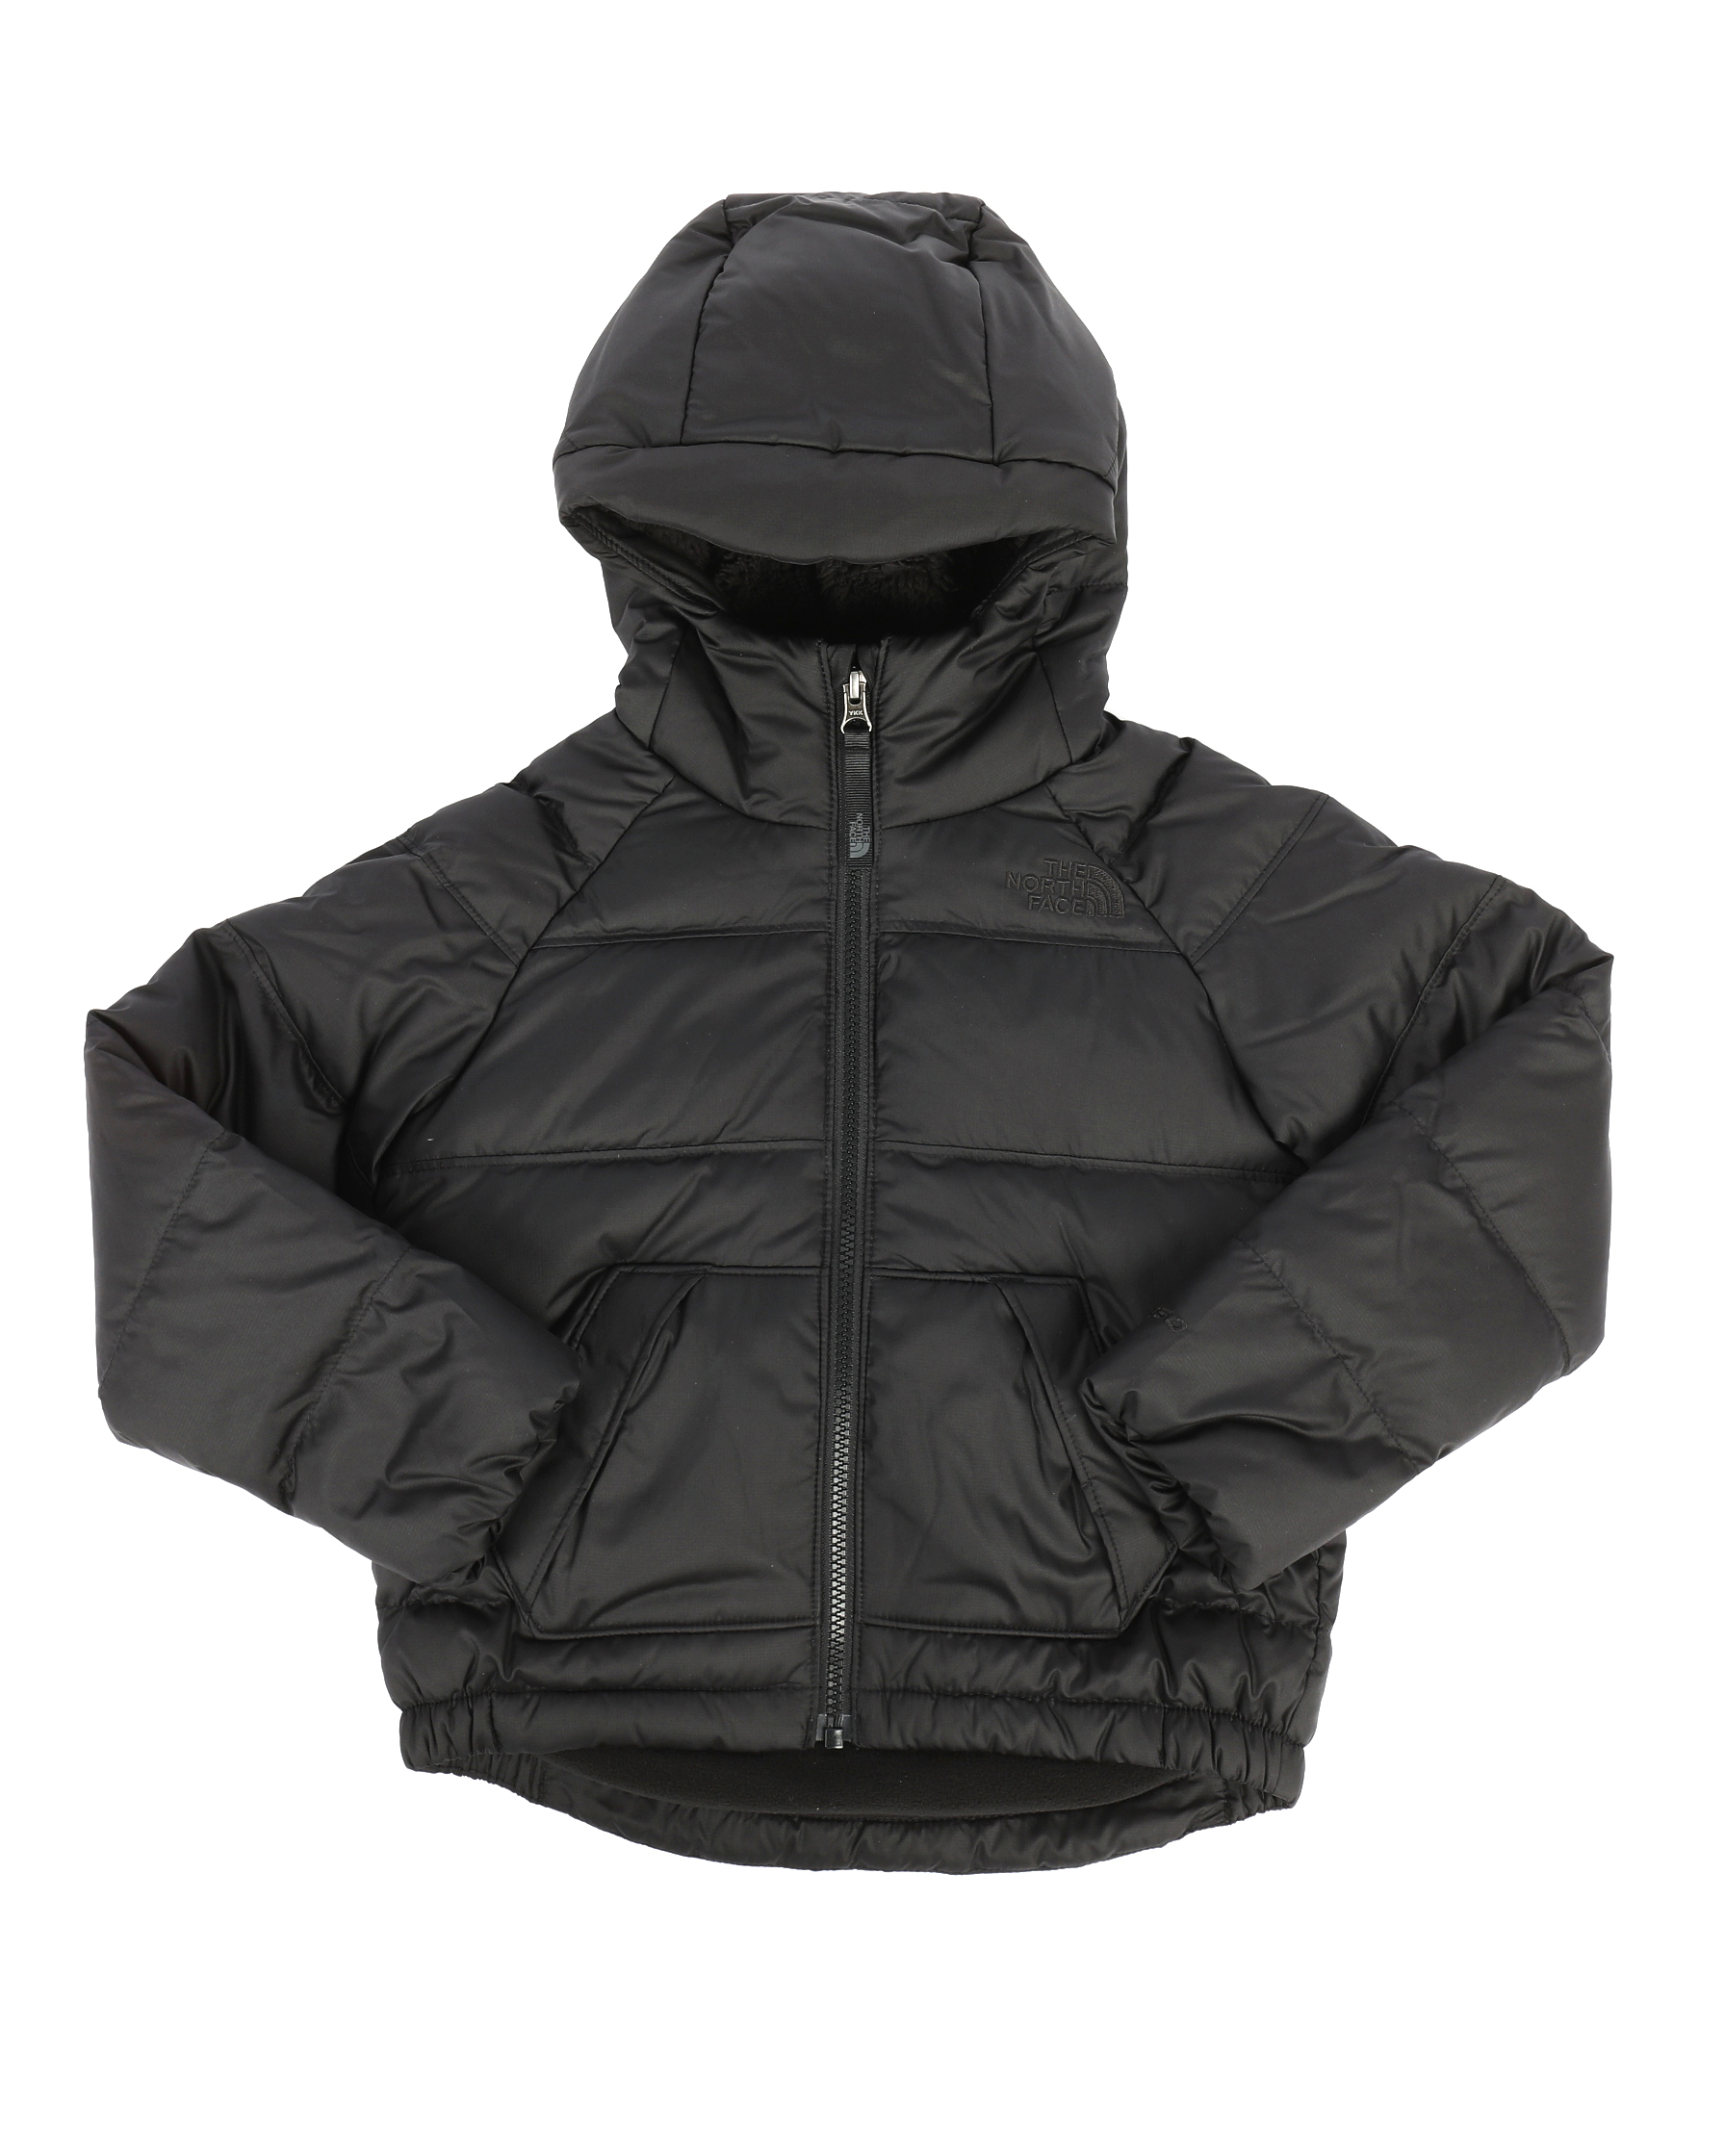 8b12c973f Buy Gotham Down Jacket (6-20) Boys Outerwear from The North Face ...